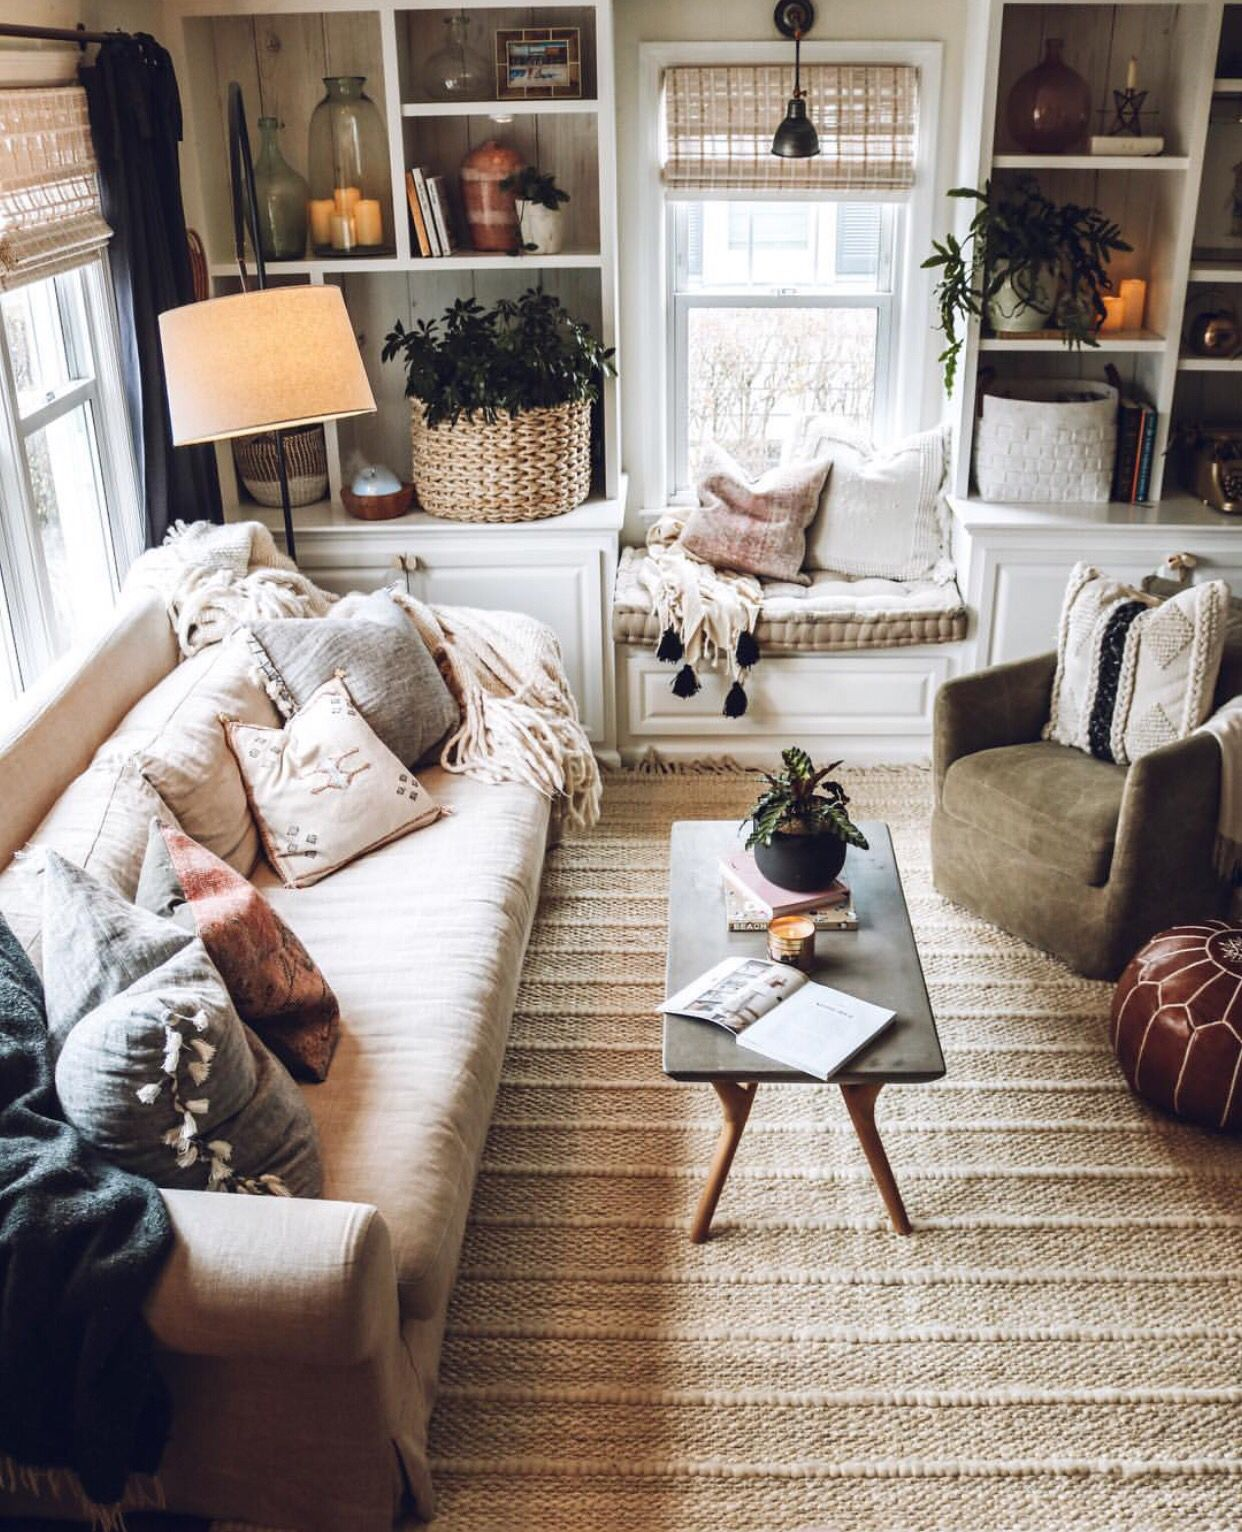 Nook Coffee Table Shelving Rugs In Living Room Small Living Rooms Small Living Room